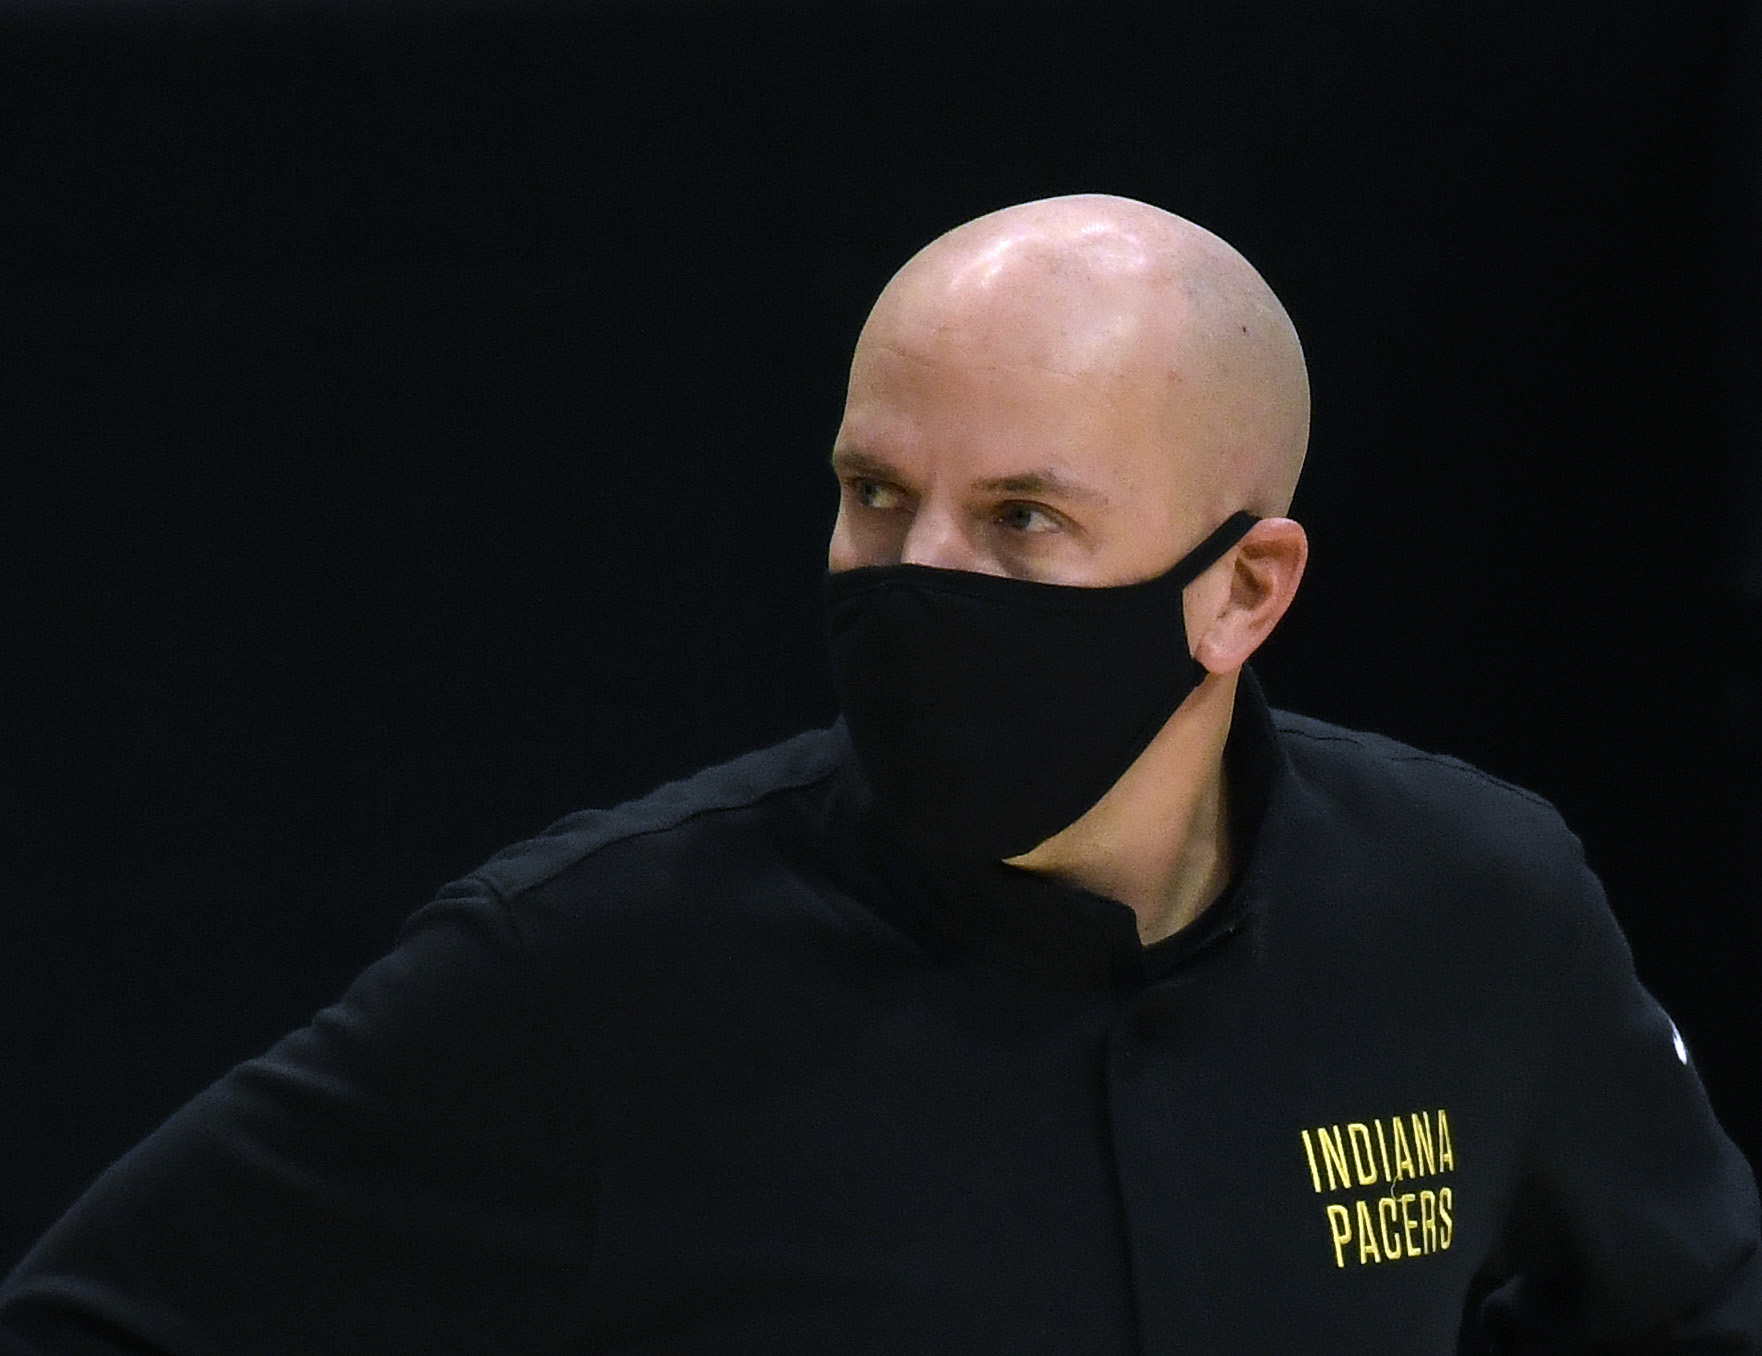 Indiana Pacers Coach Nate Bjorkgren fired